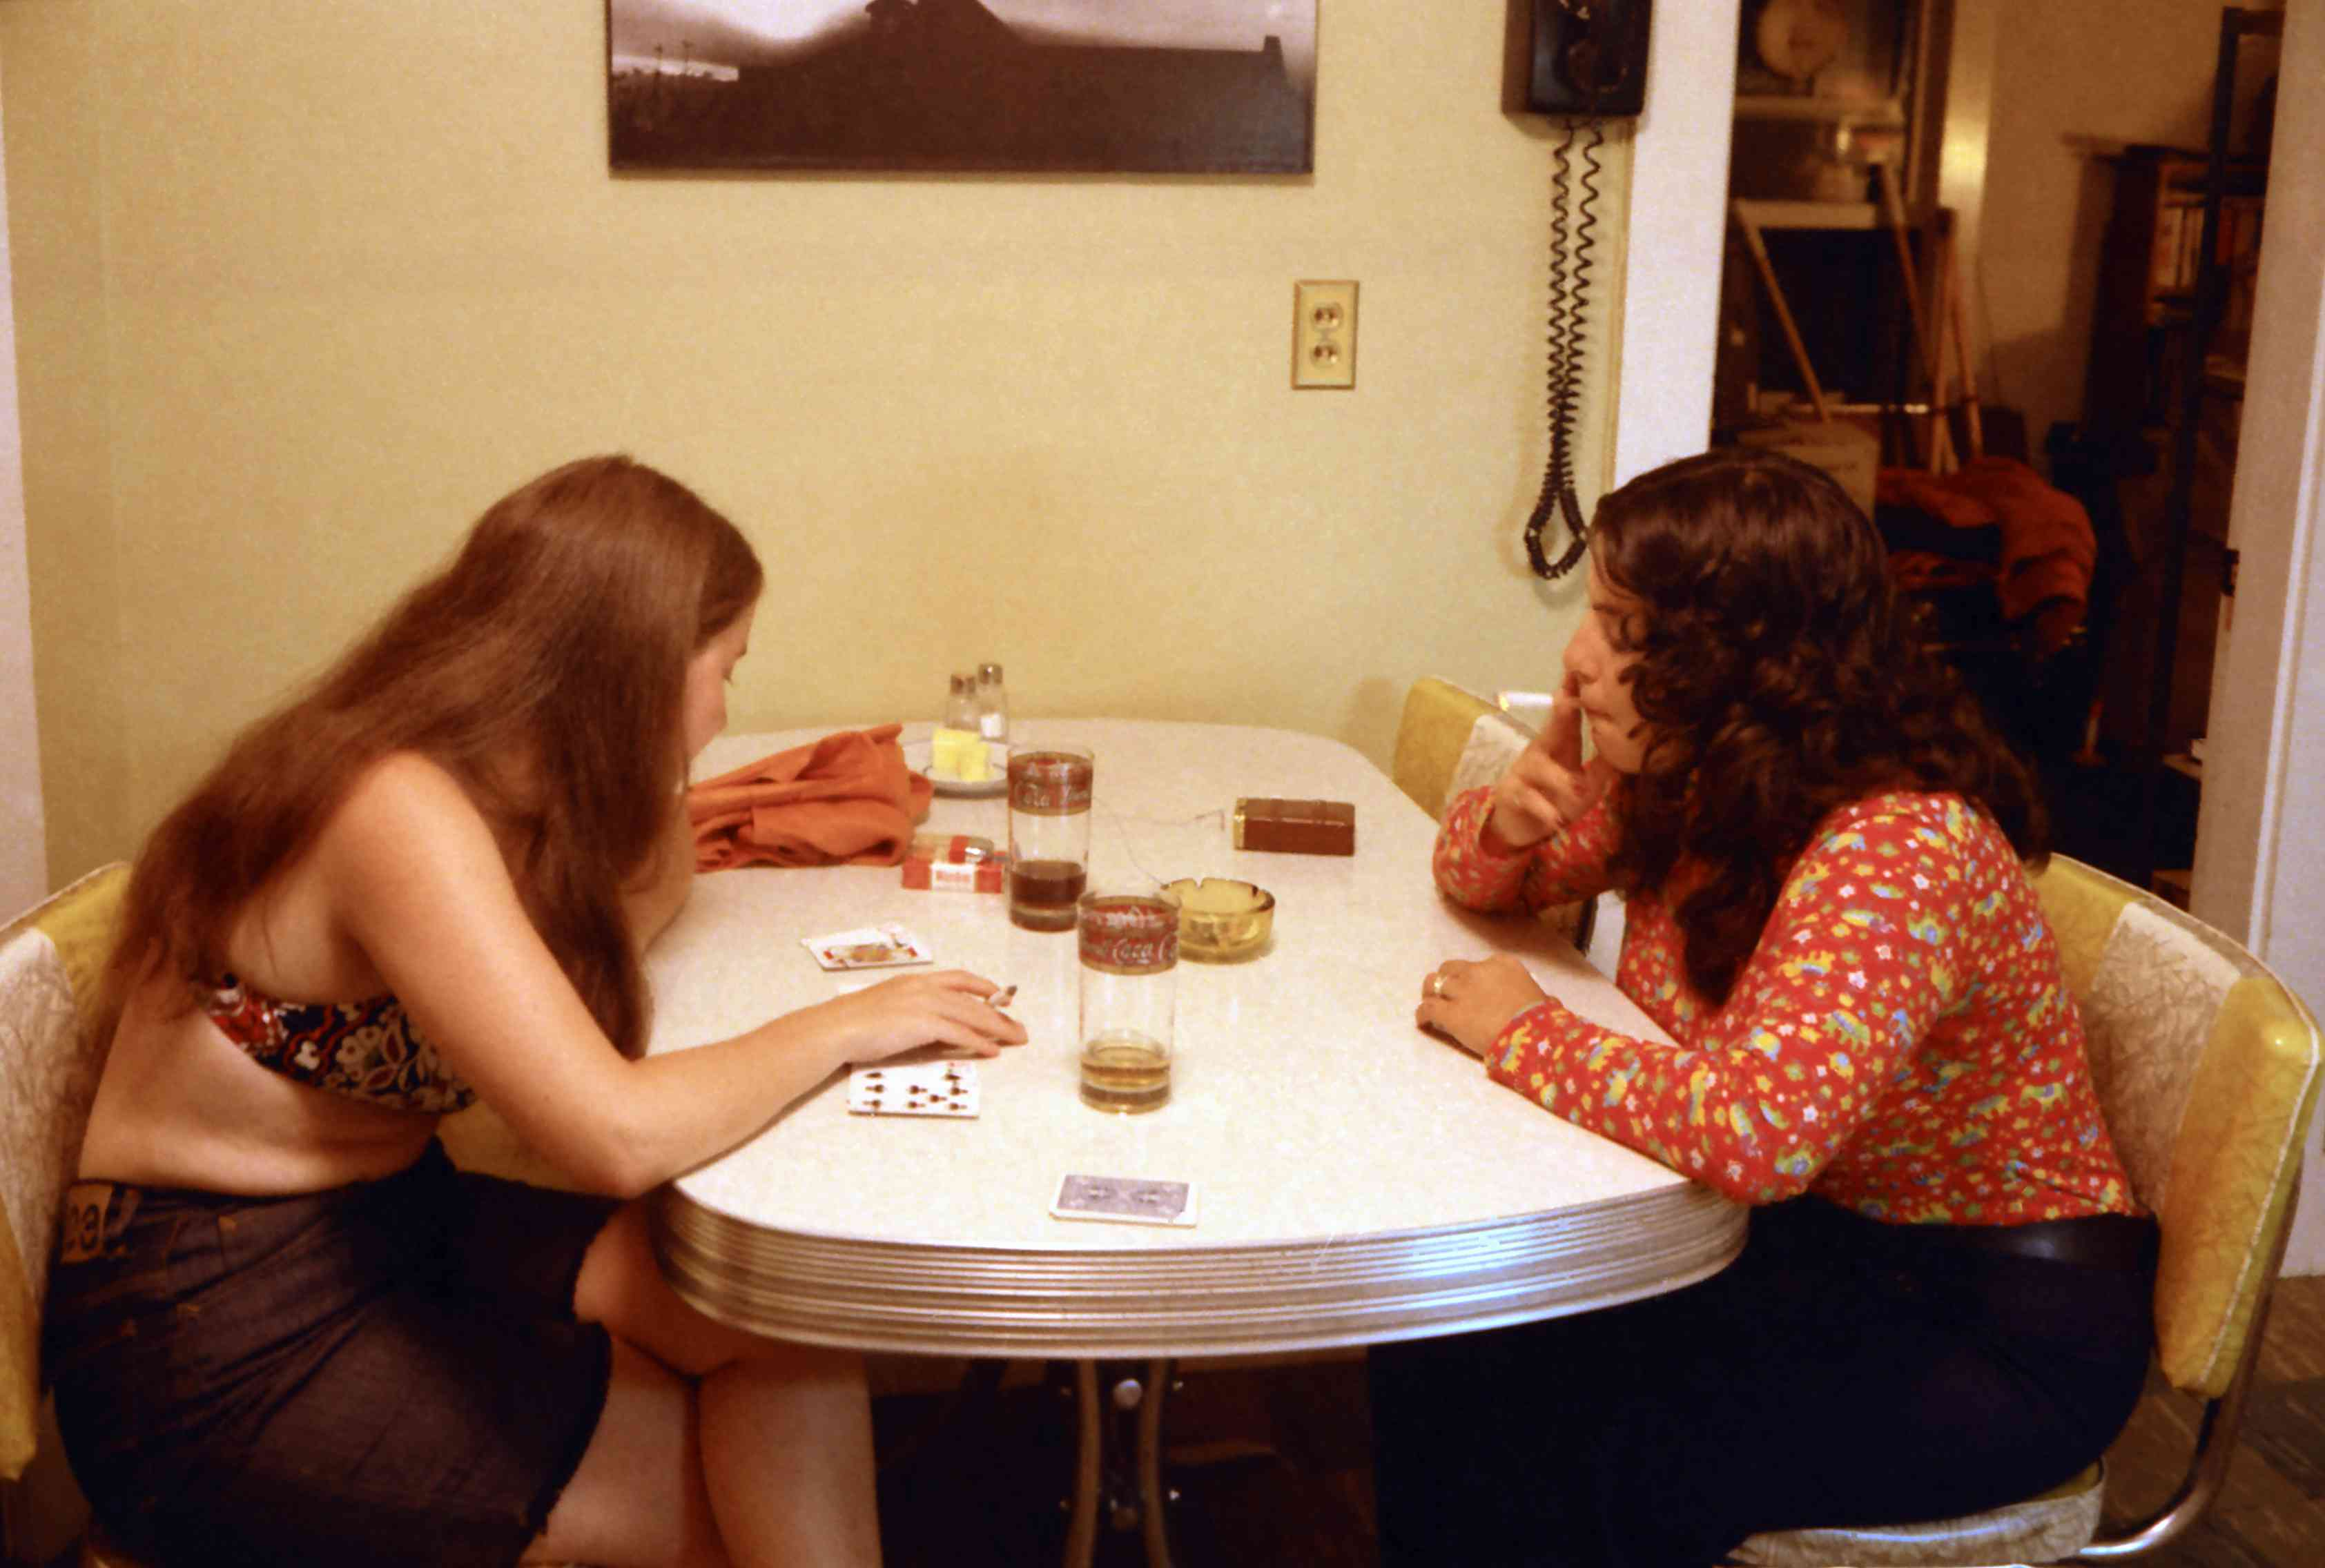 1970s photo of card game in kitchen